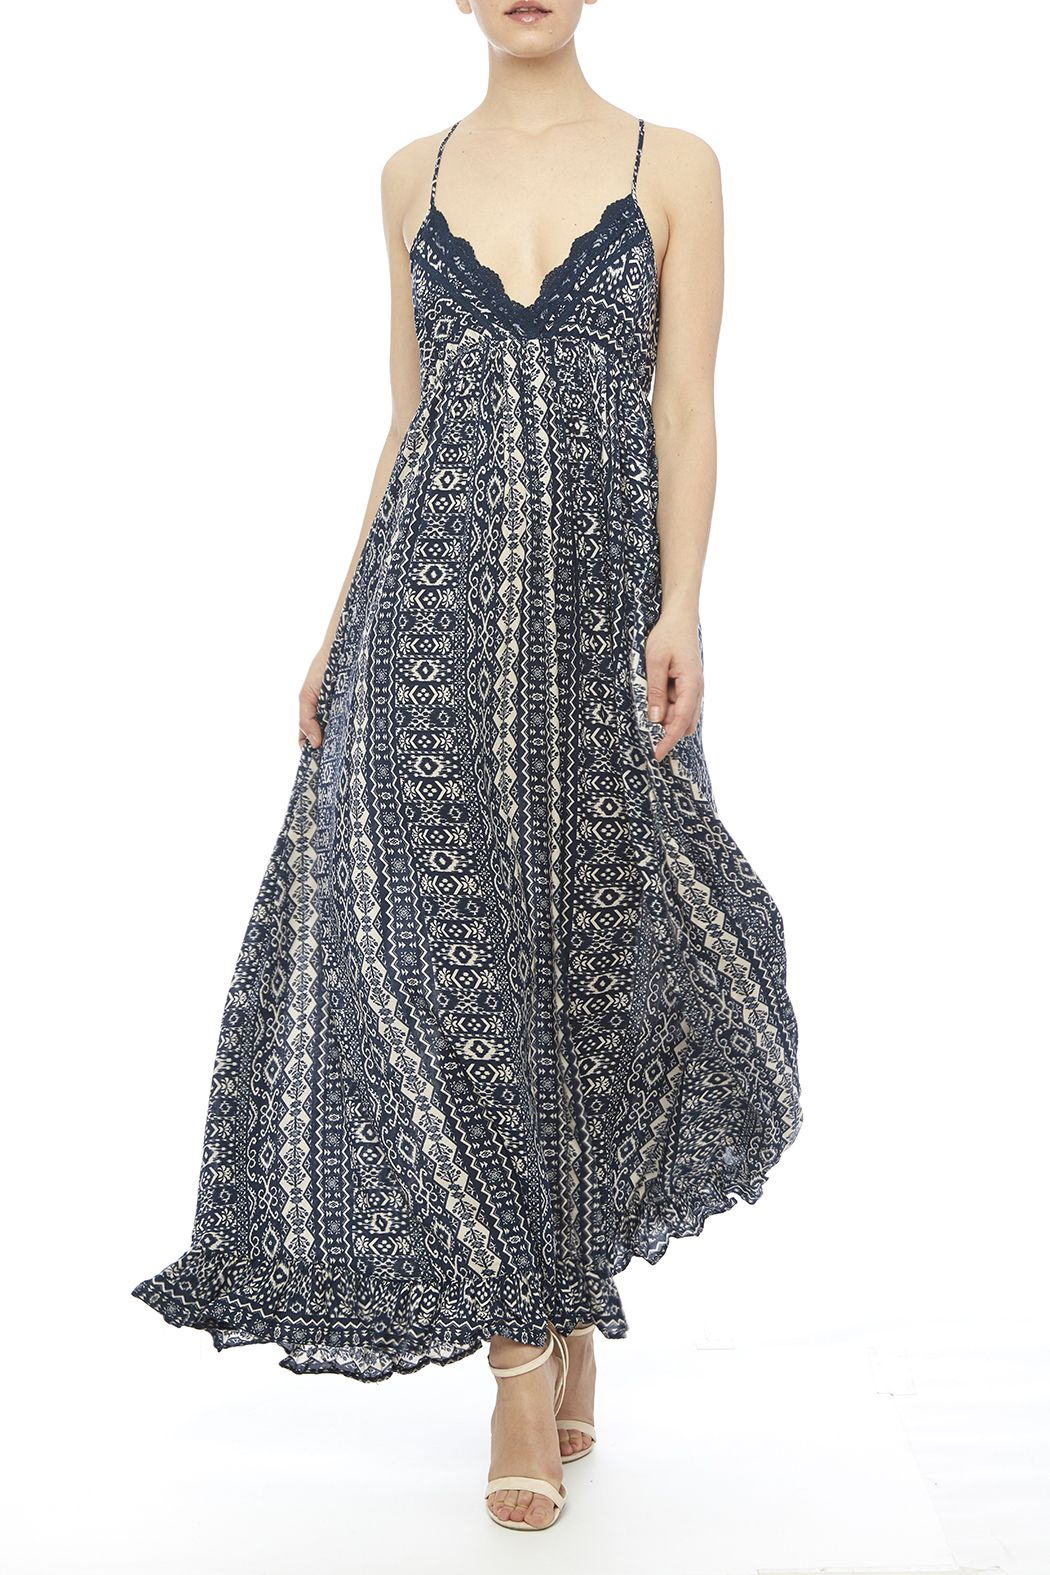 Navy patterned,boho sundress with a ruffle hem and lace embellishment at the v-neckline.   The Mary Dress by Cotton Candy. Clothing - Dresses - Maxi Clothing - Dresses - Printed Minneapolis, Minnesota